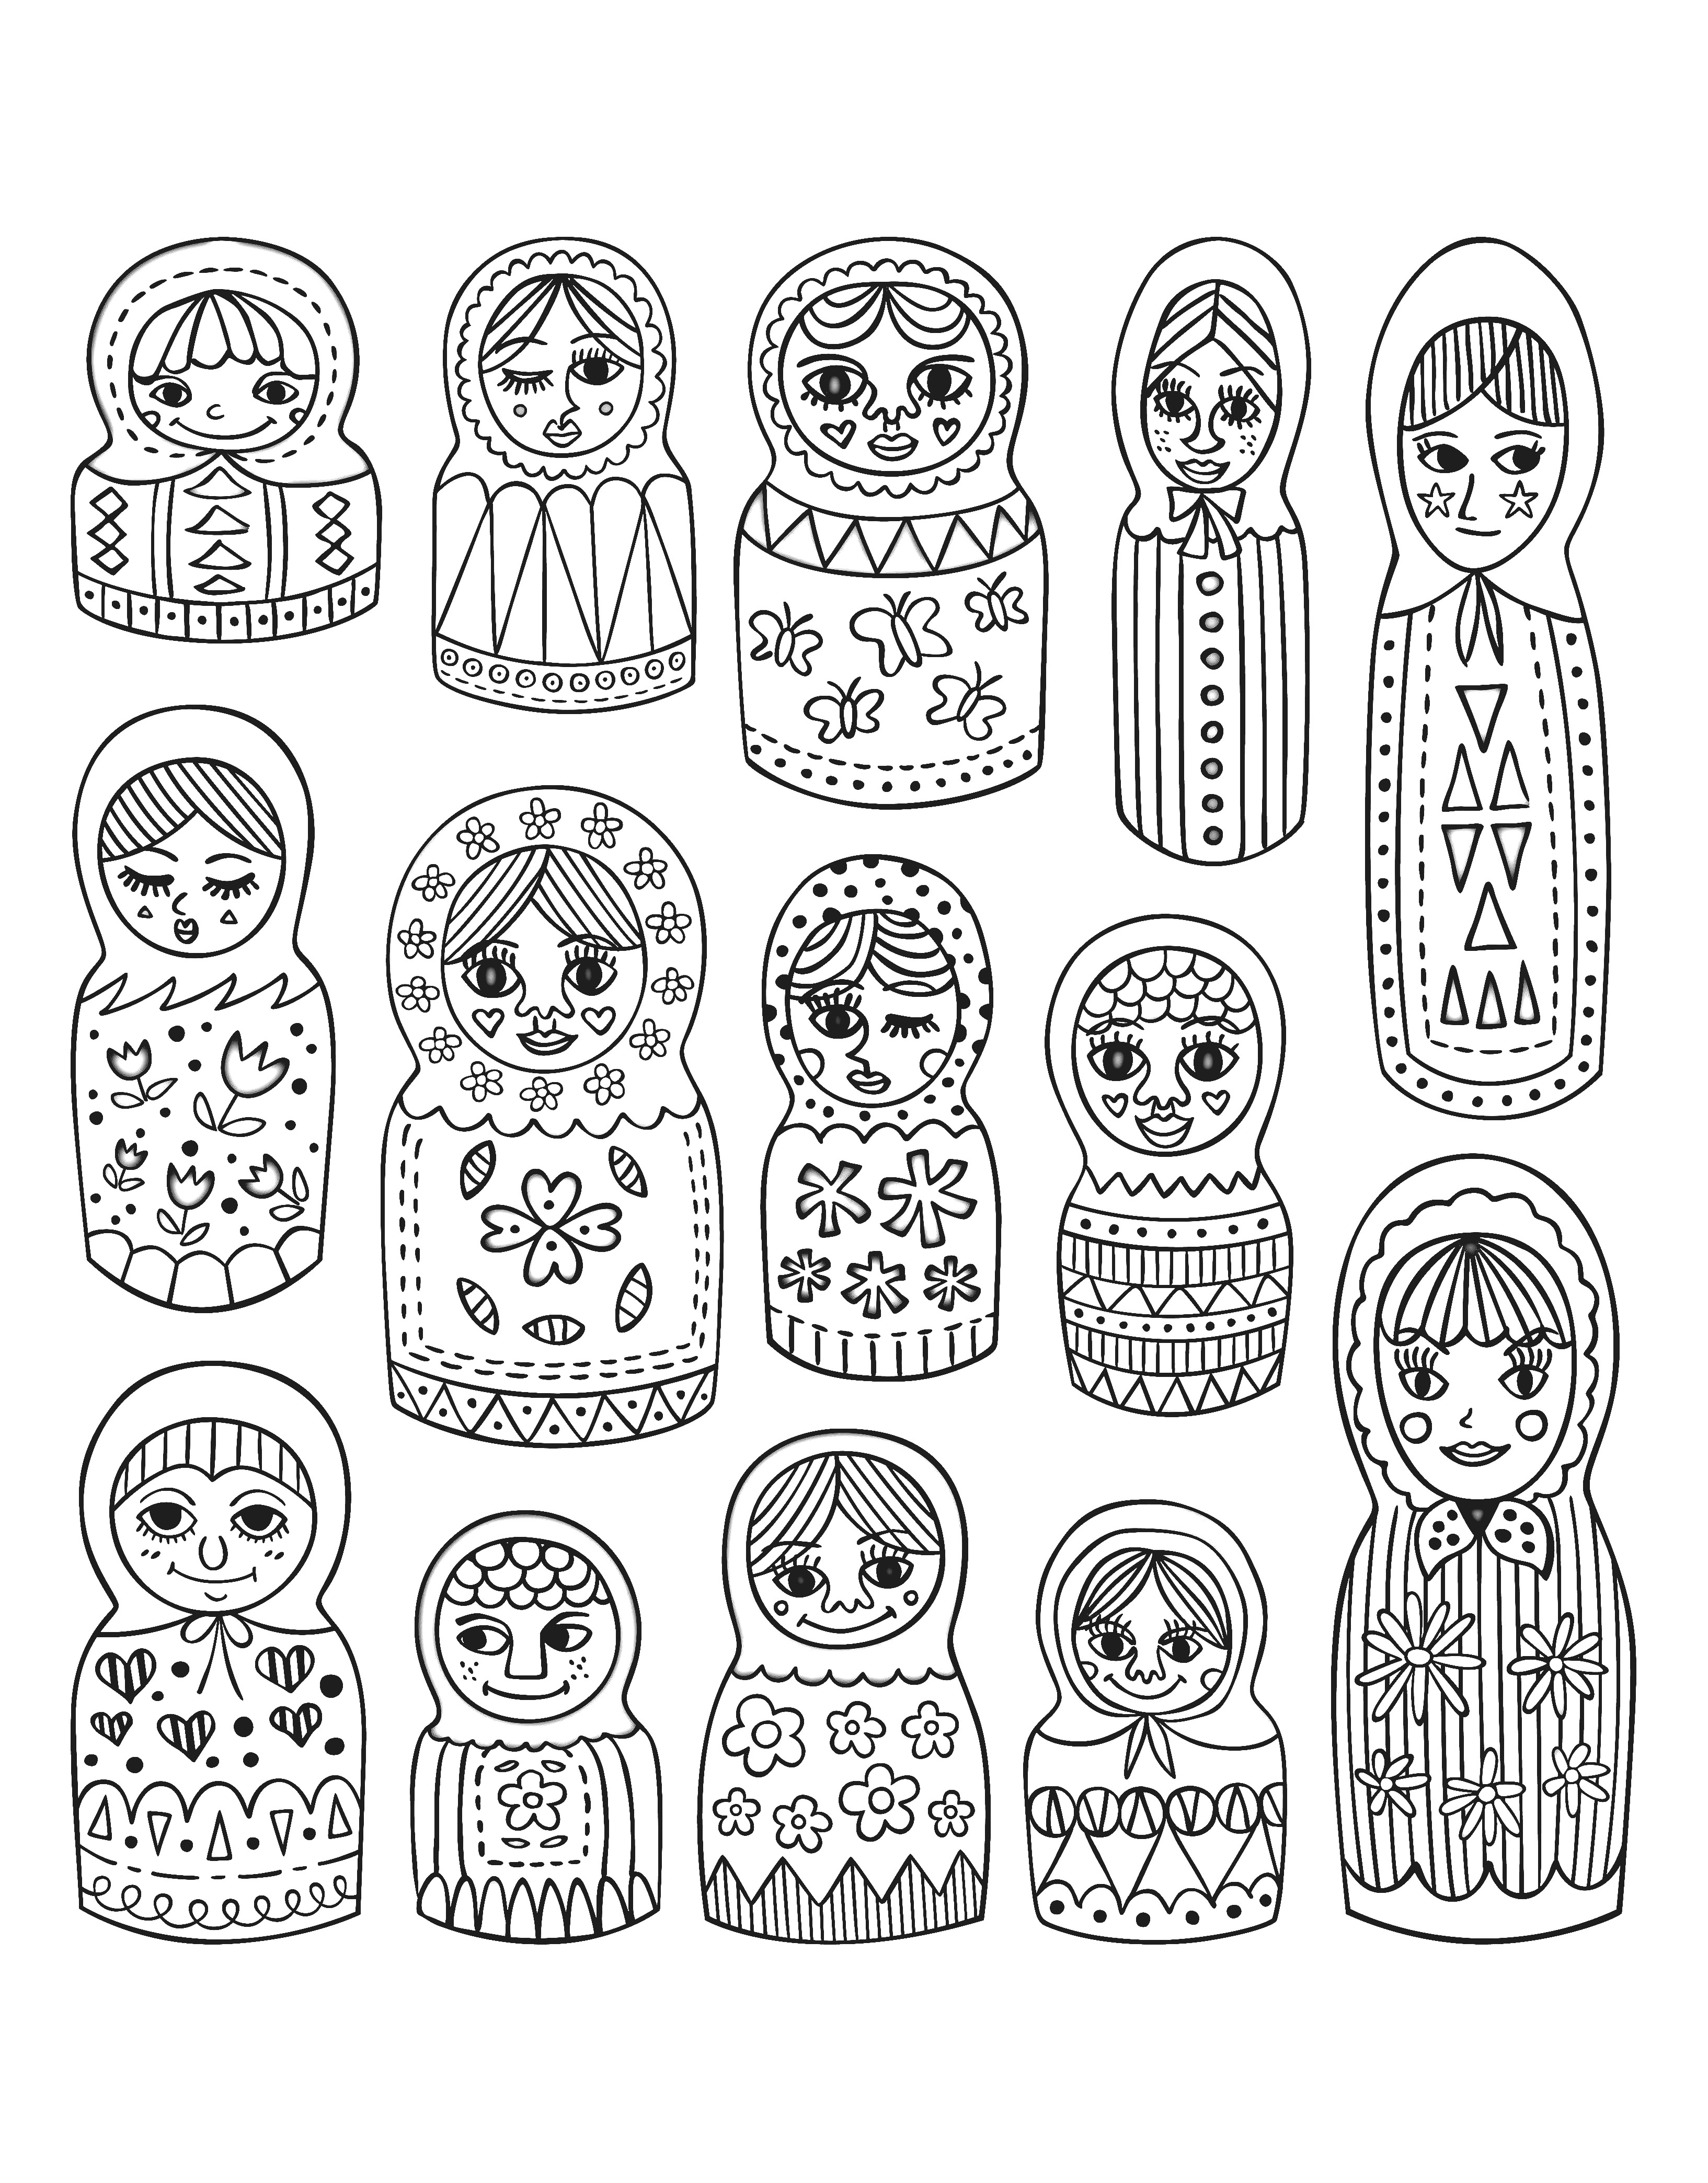 Cute Matryoshka Dolls Different Styles